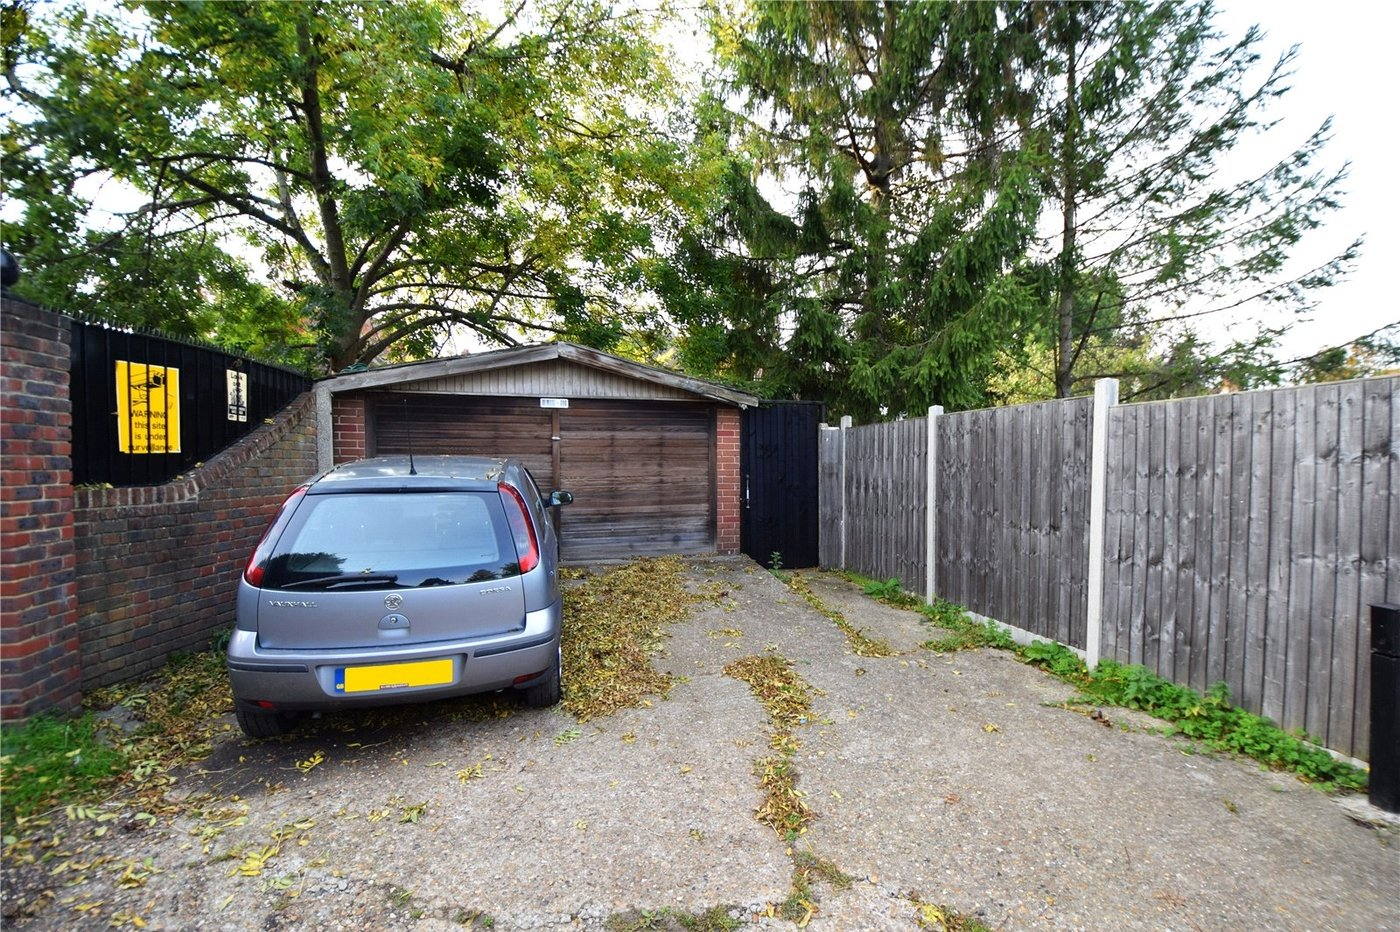 House for sale in swanley lane swanley kent br8 for 11 jackson terrace freehold nj